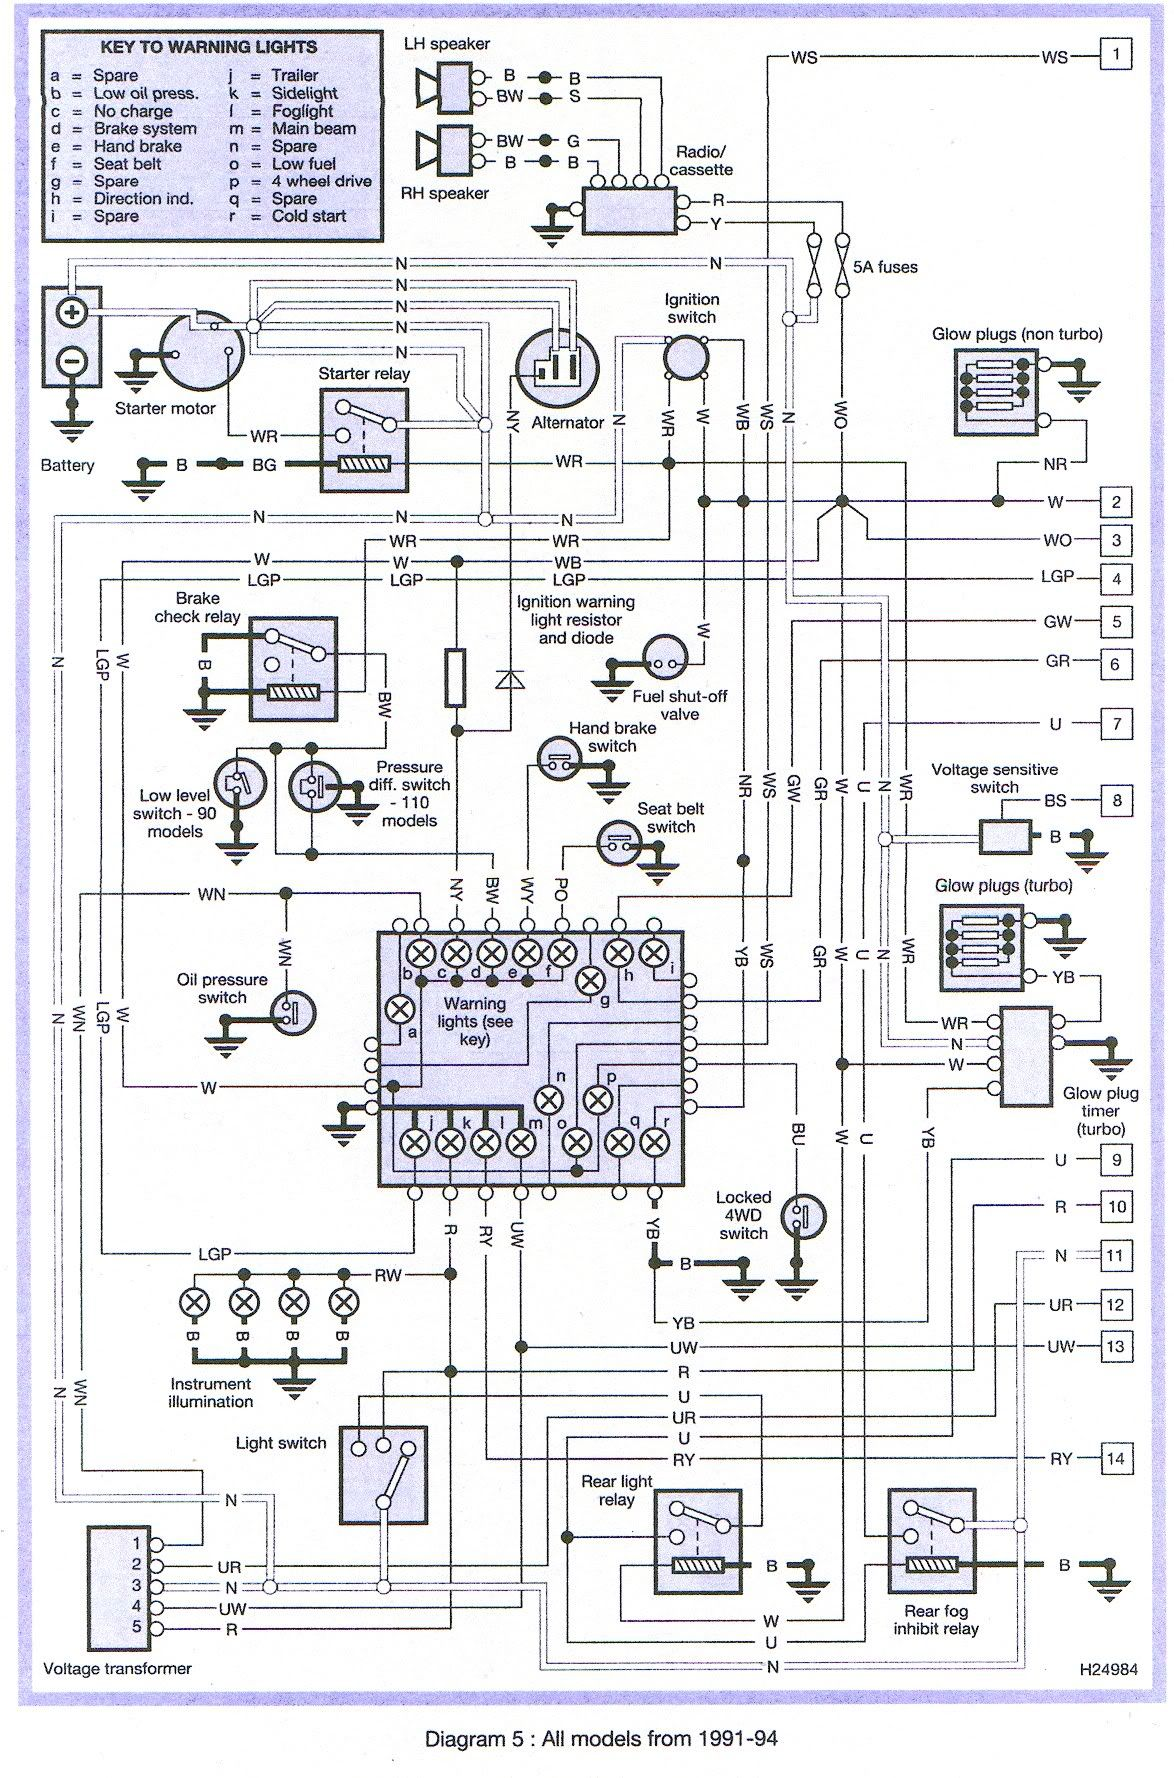 small resolution of 2004 land rover engine diagram wiring diagram img 2008 range rover hse wiring diagram range rover hse wiring diagram